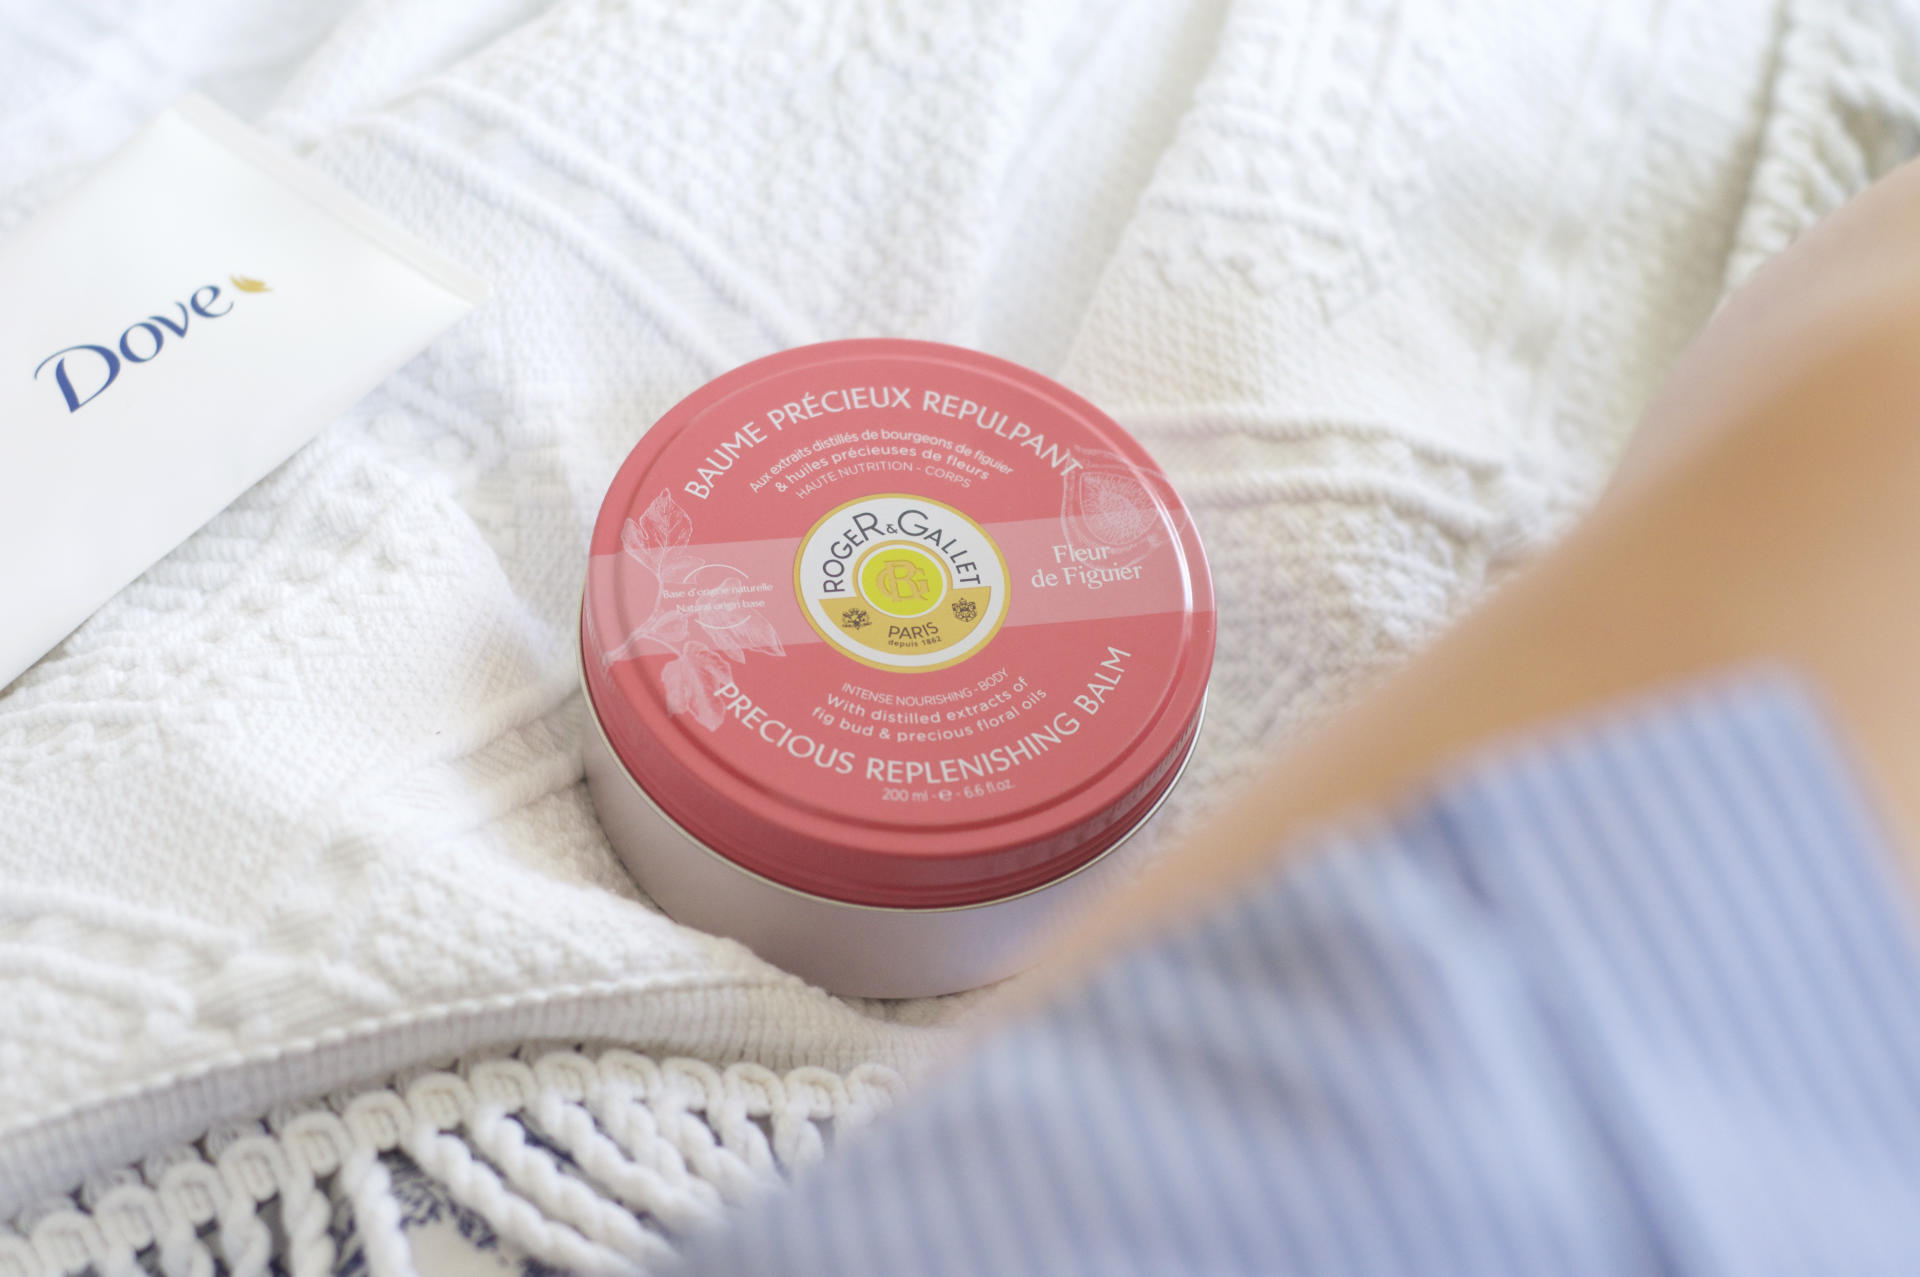 Made From Beauty Roger & Gallet Fleur de Figuier Precious Replenishing Balm